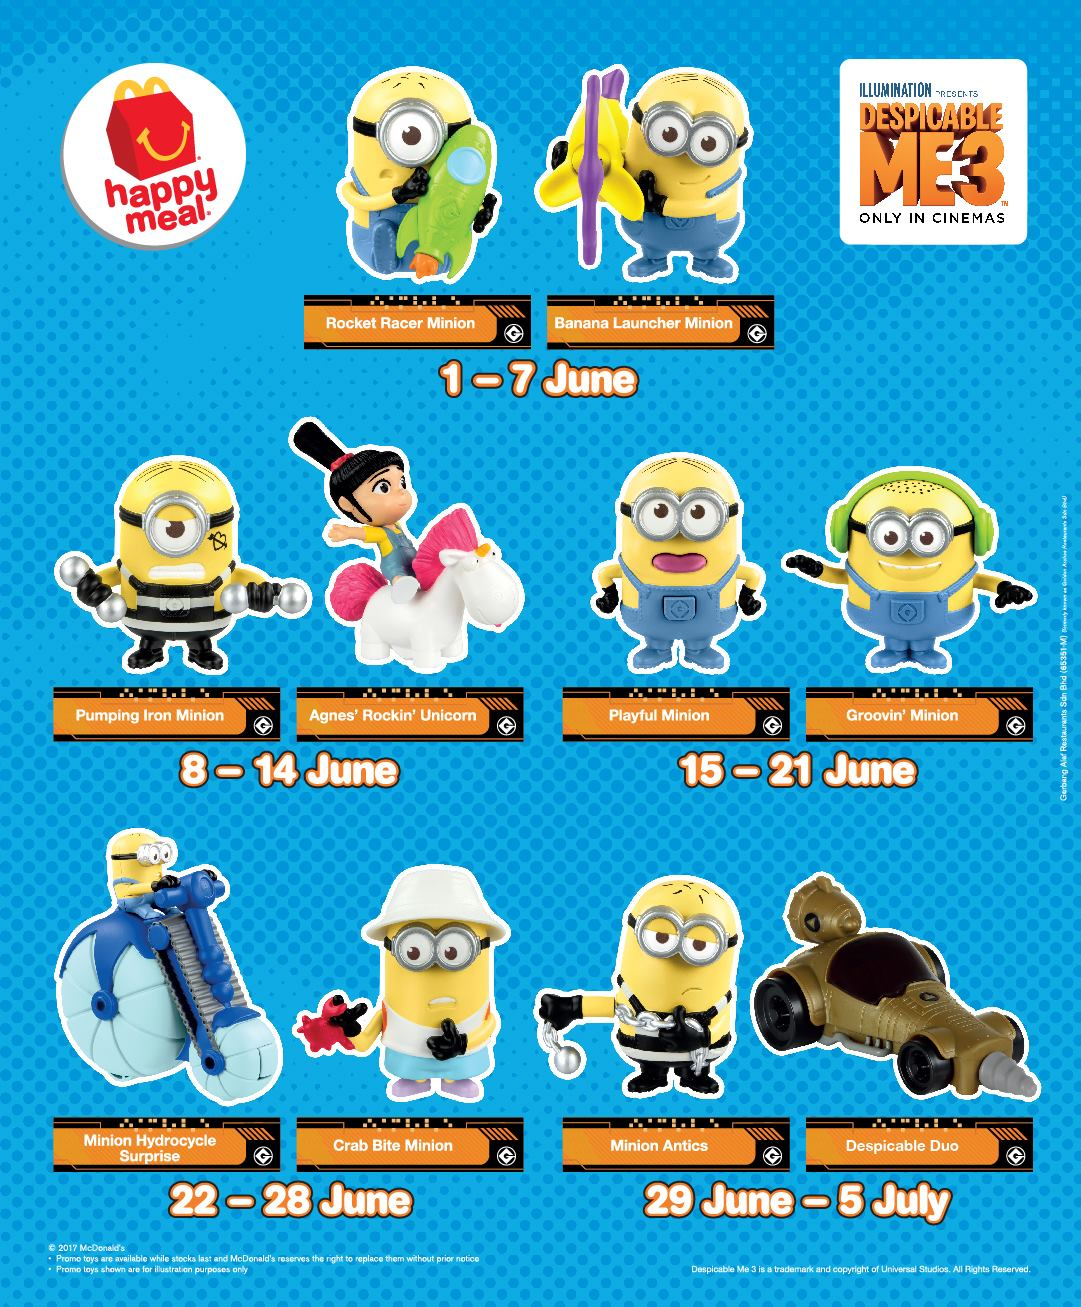 minions at mcdonalds com sweepstakes free despicable me 3 minion toys giveaway 7096